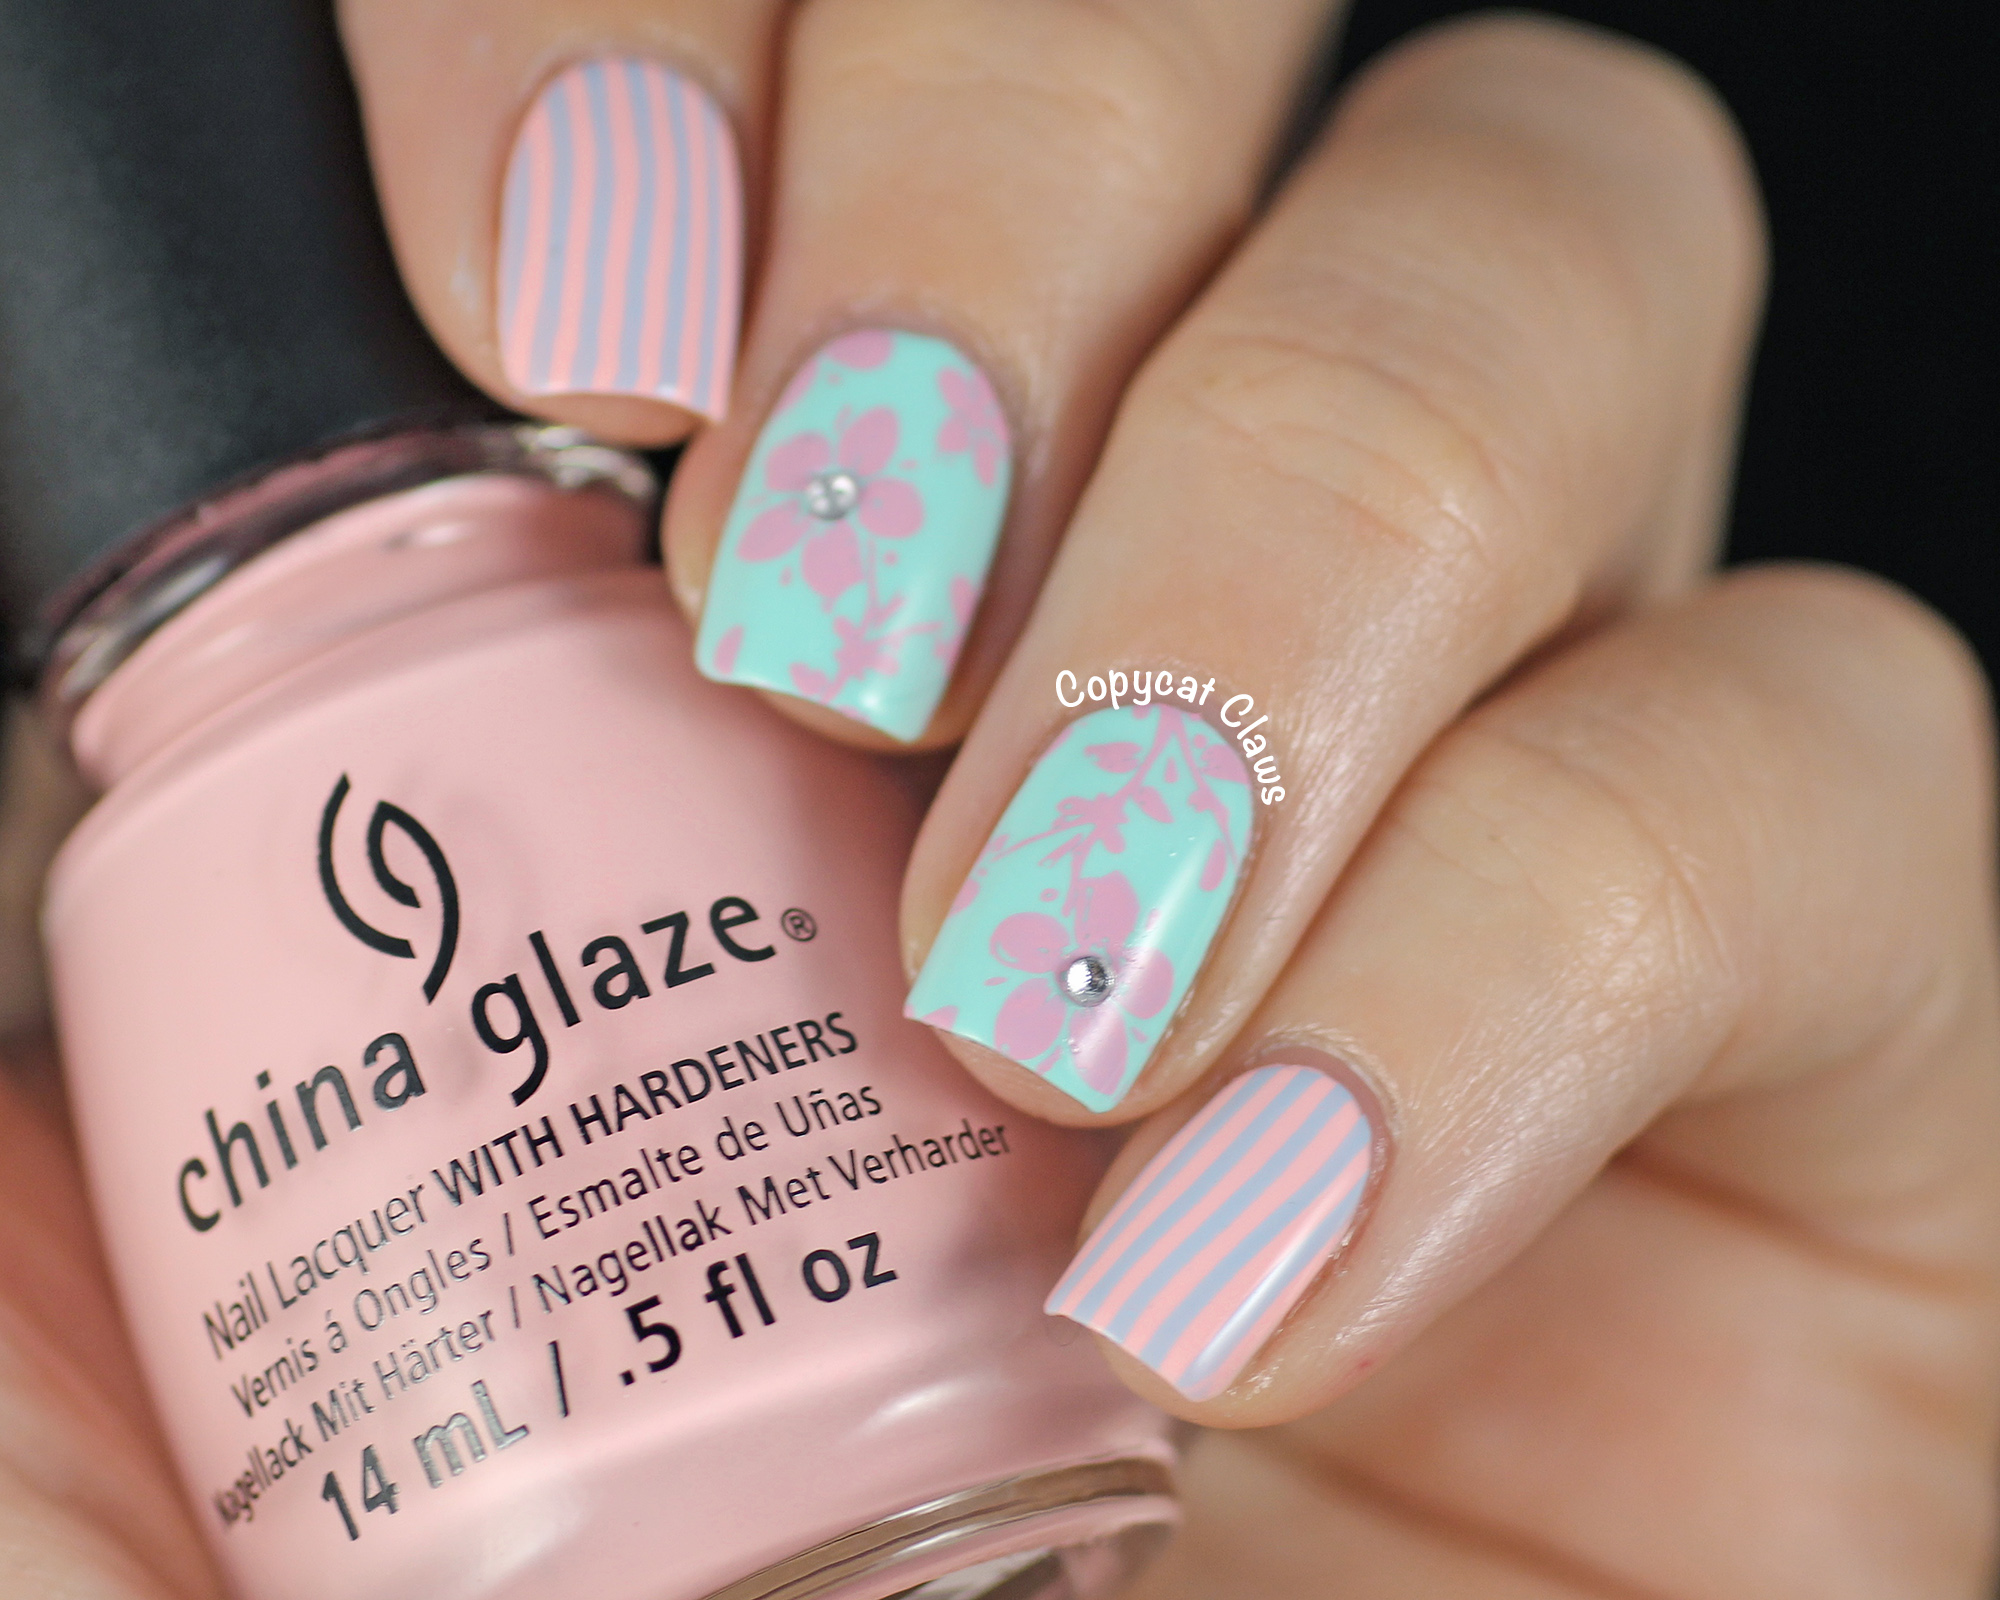 Copycat Claws: Sunday Stamping: Pastels